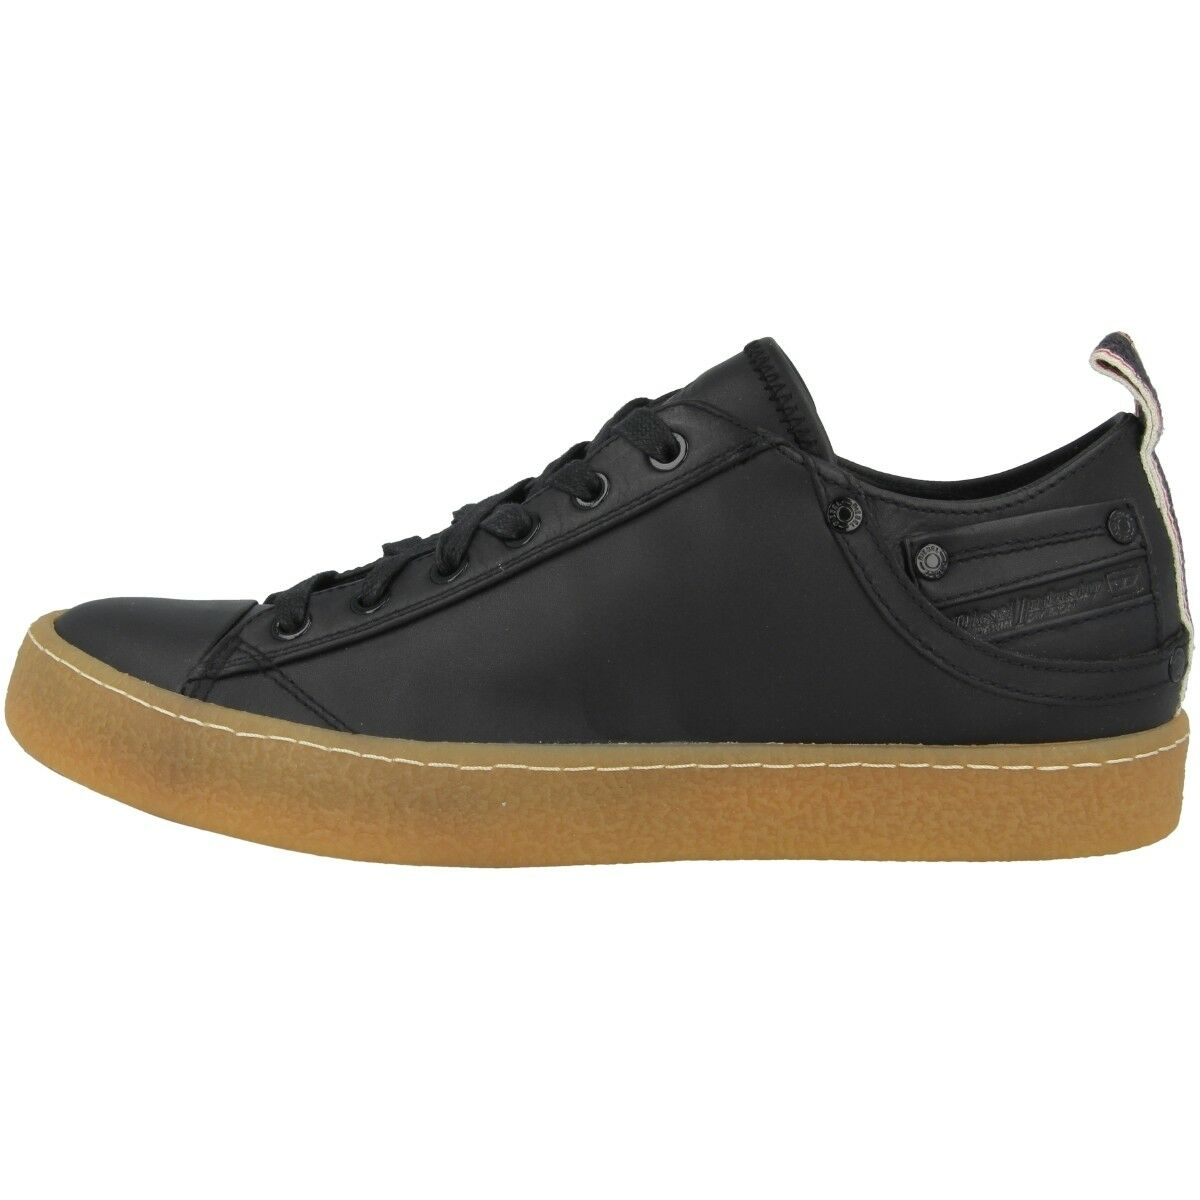 DIESEL EXPOSURE I Informales Low Deportiva Botín Zapatos Informales I Black bc9dfb